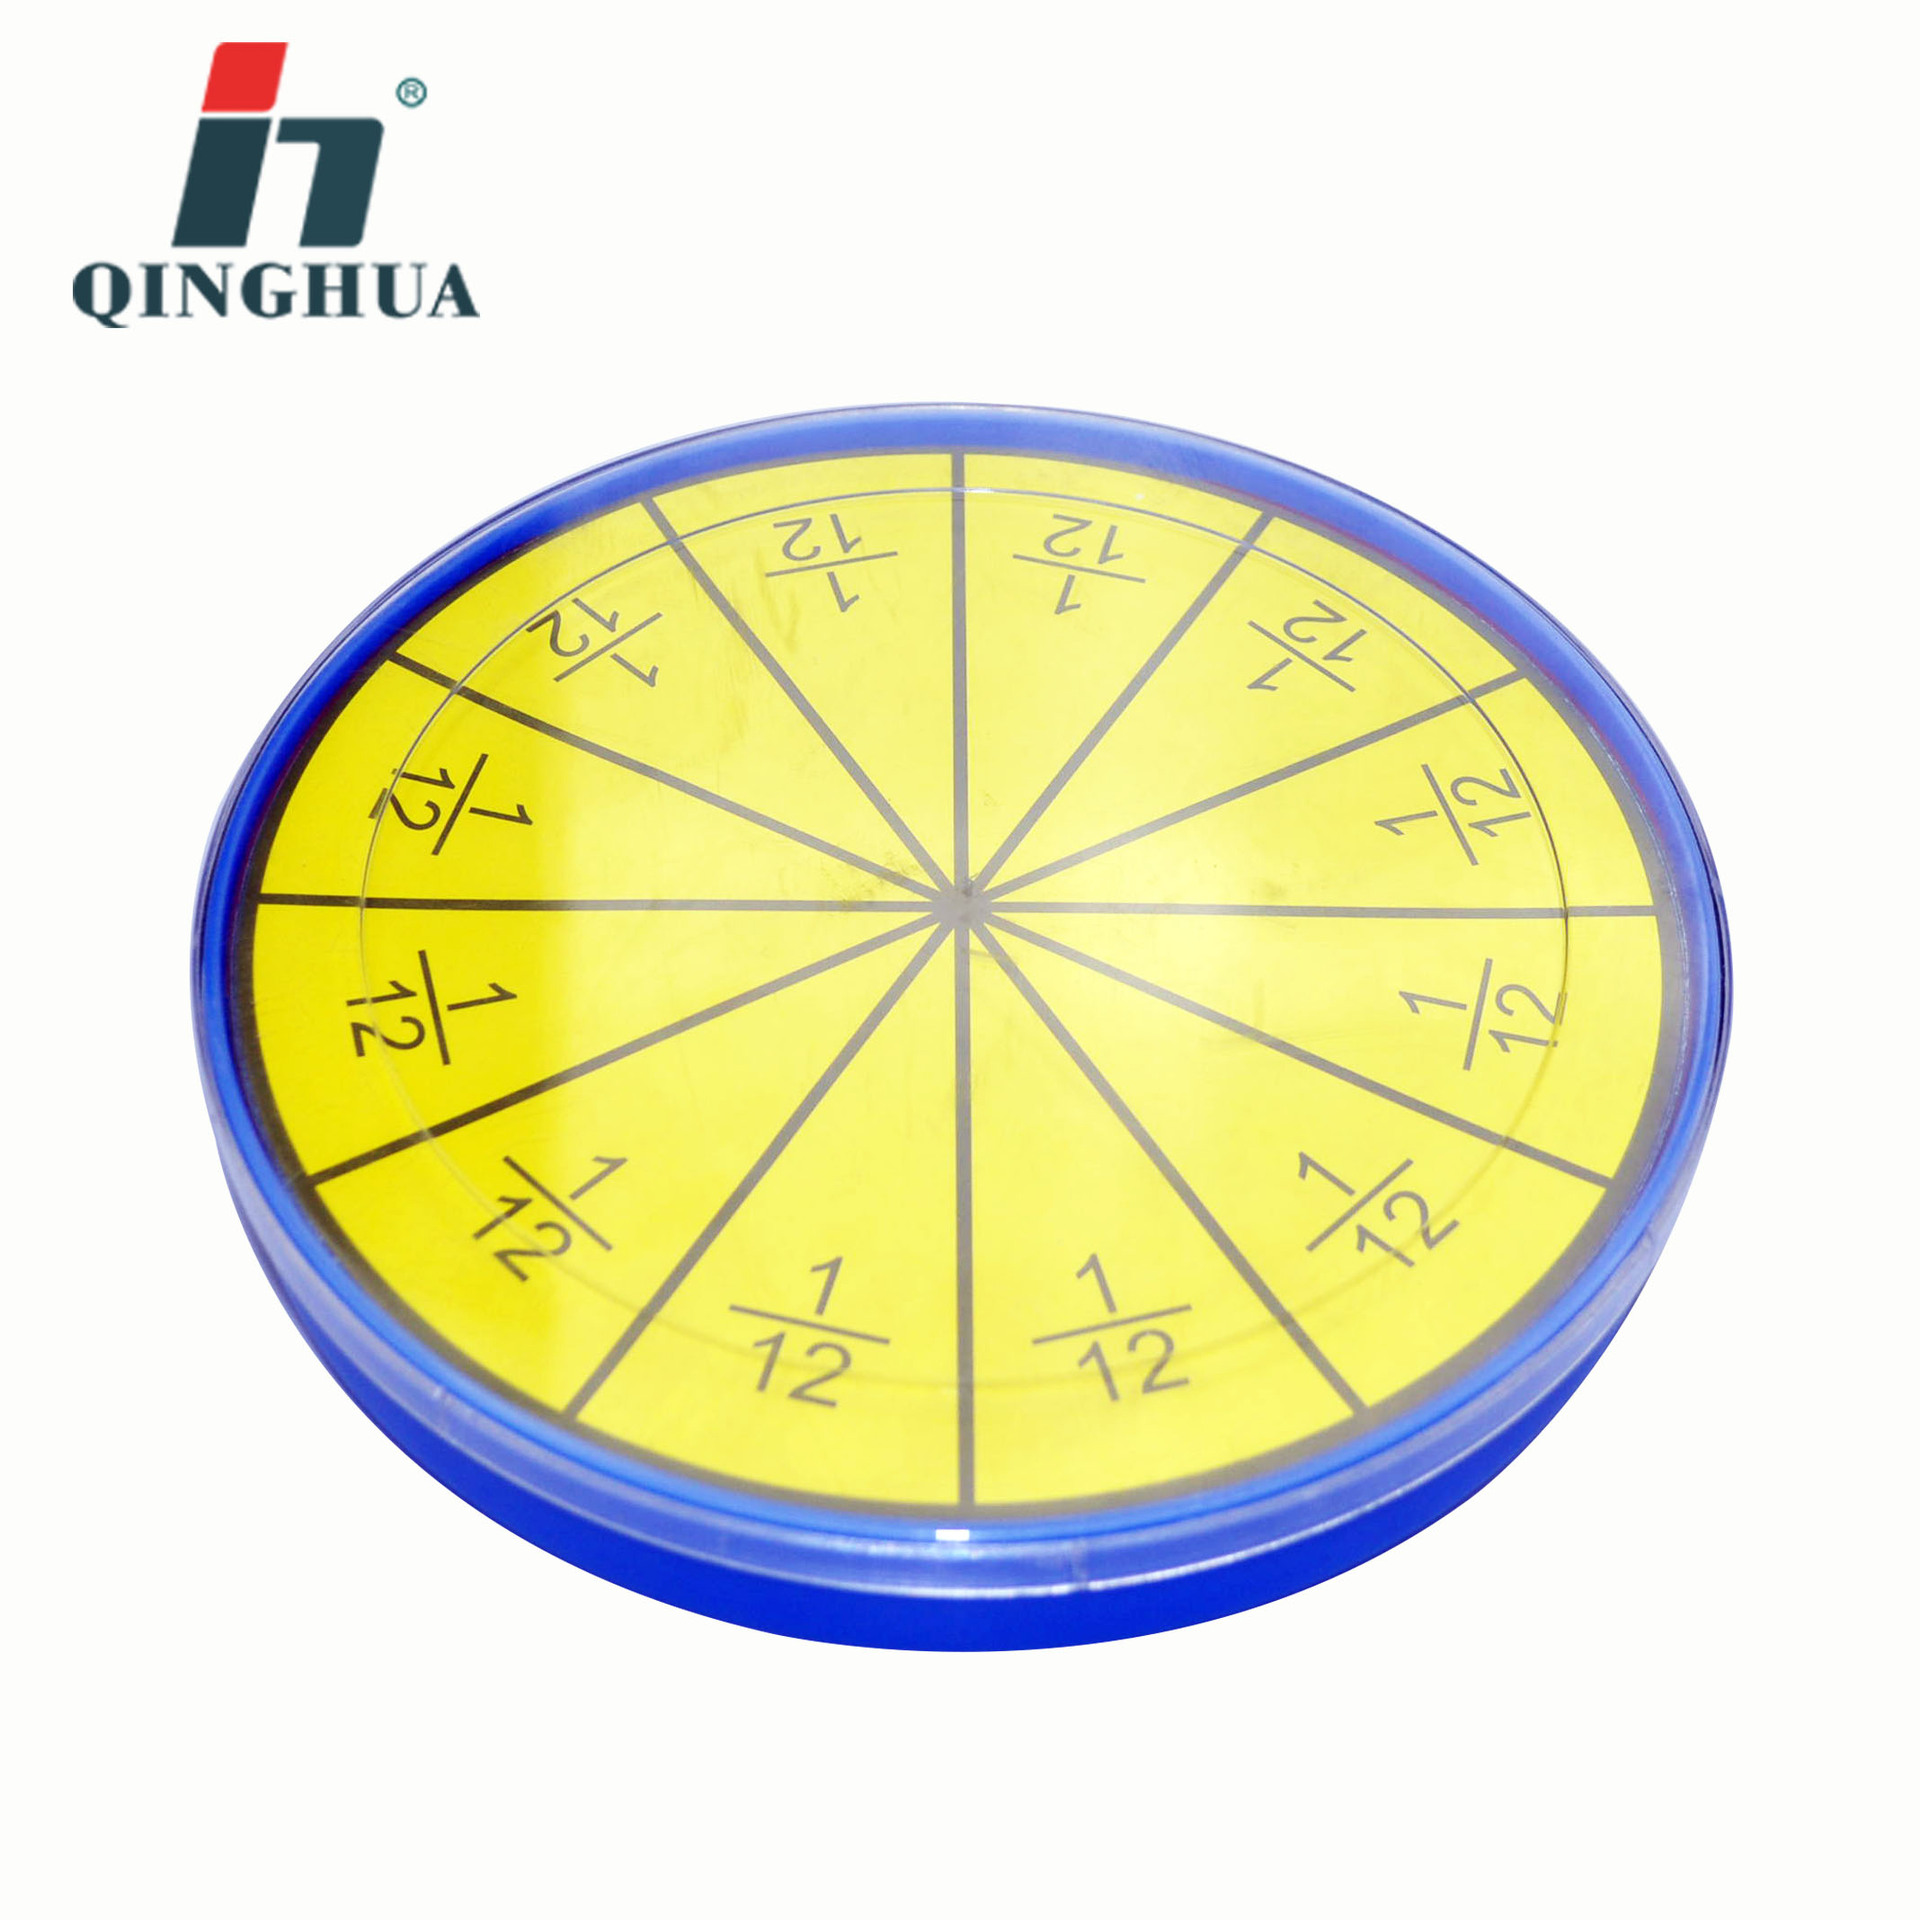 Score Problem Primary School Mathematics Teaching Aids Demonstration Science and Education Equipment Intellectual Toys Student clock table model teacher demonstration with primary school mathematics science and education equipment three needle linkage